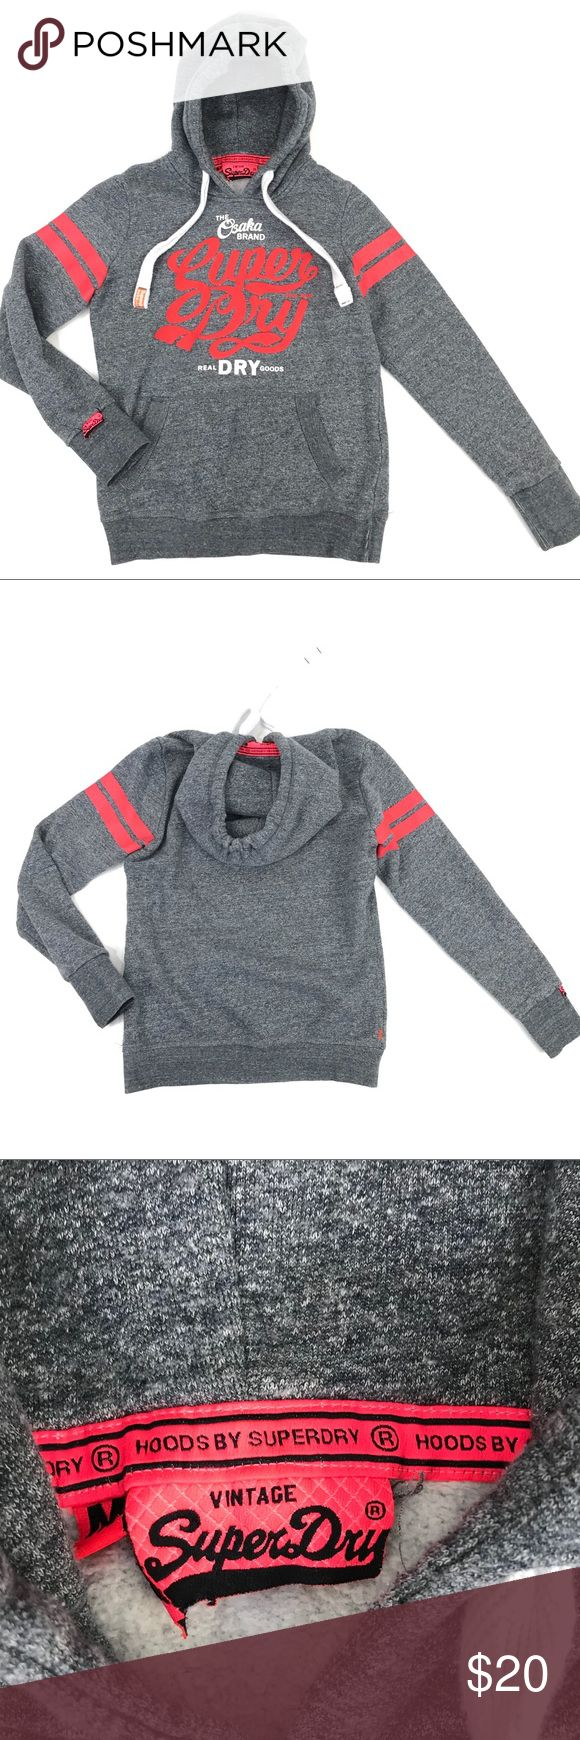 Super Dry Hoodie Sweatshirt Gray Raised Logo Super Dry Hoodie Sweatshirt Womens Medium Gray Raised Logo Osaka Brand Superdry   Condition: Pre-owned Gently Worn Some of the color from the stripes on the arm has spread under the arms slightly   Measurements taken while garment was laying flat: These measurements were personally taken and are approximate:  Underarm to Underarm Seam inches- 20 Length from shoulder seam to hem inches- 25 Length across Bottom inches-  17 (un-stretched) Bottom of…